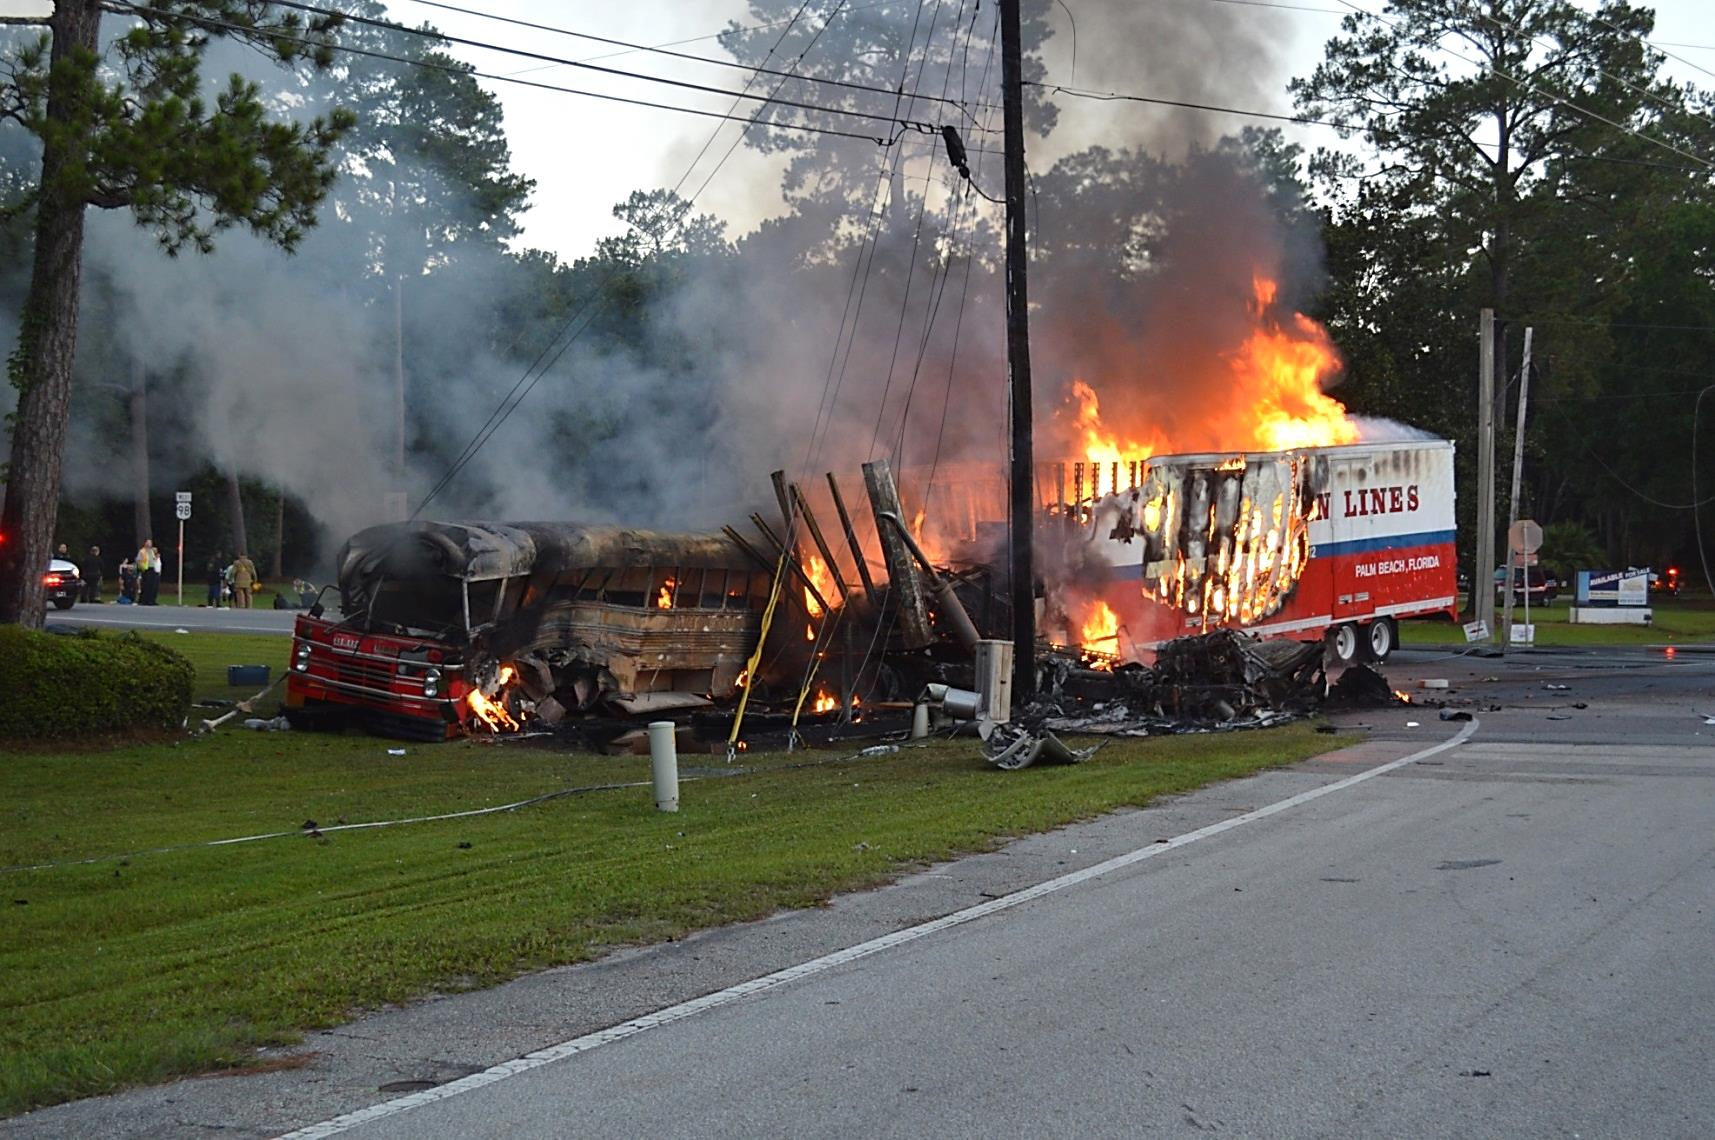 Bus and truck involved in the St. Marks, Florida, crash on fire in their final rest positions on the southwest corner of the int